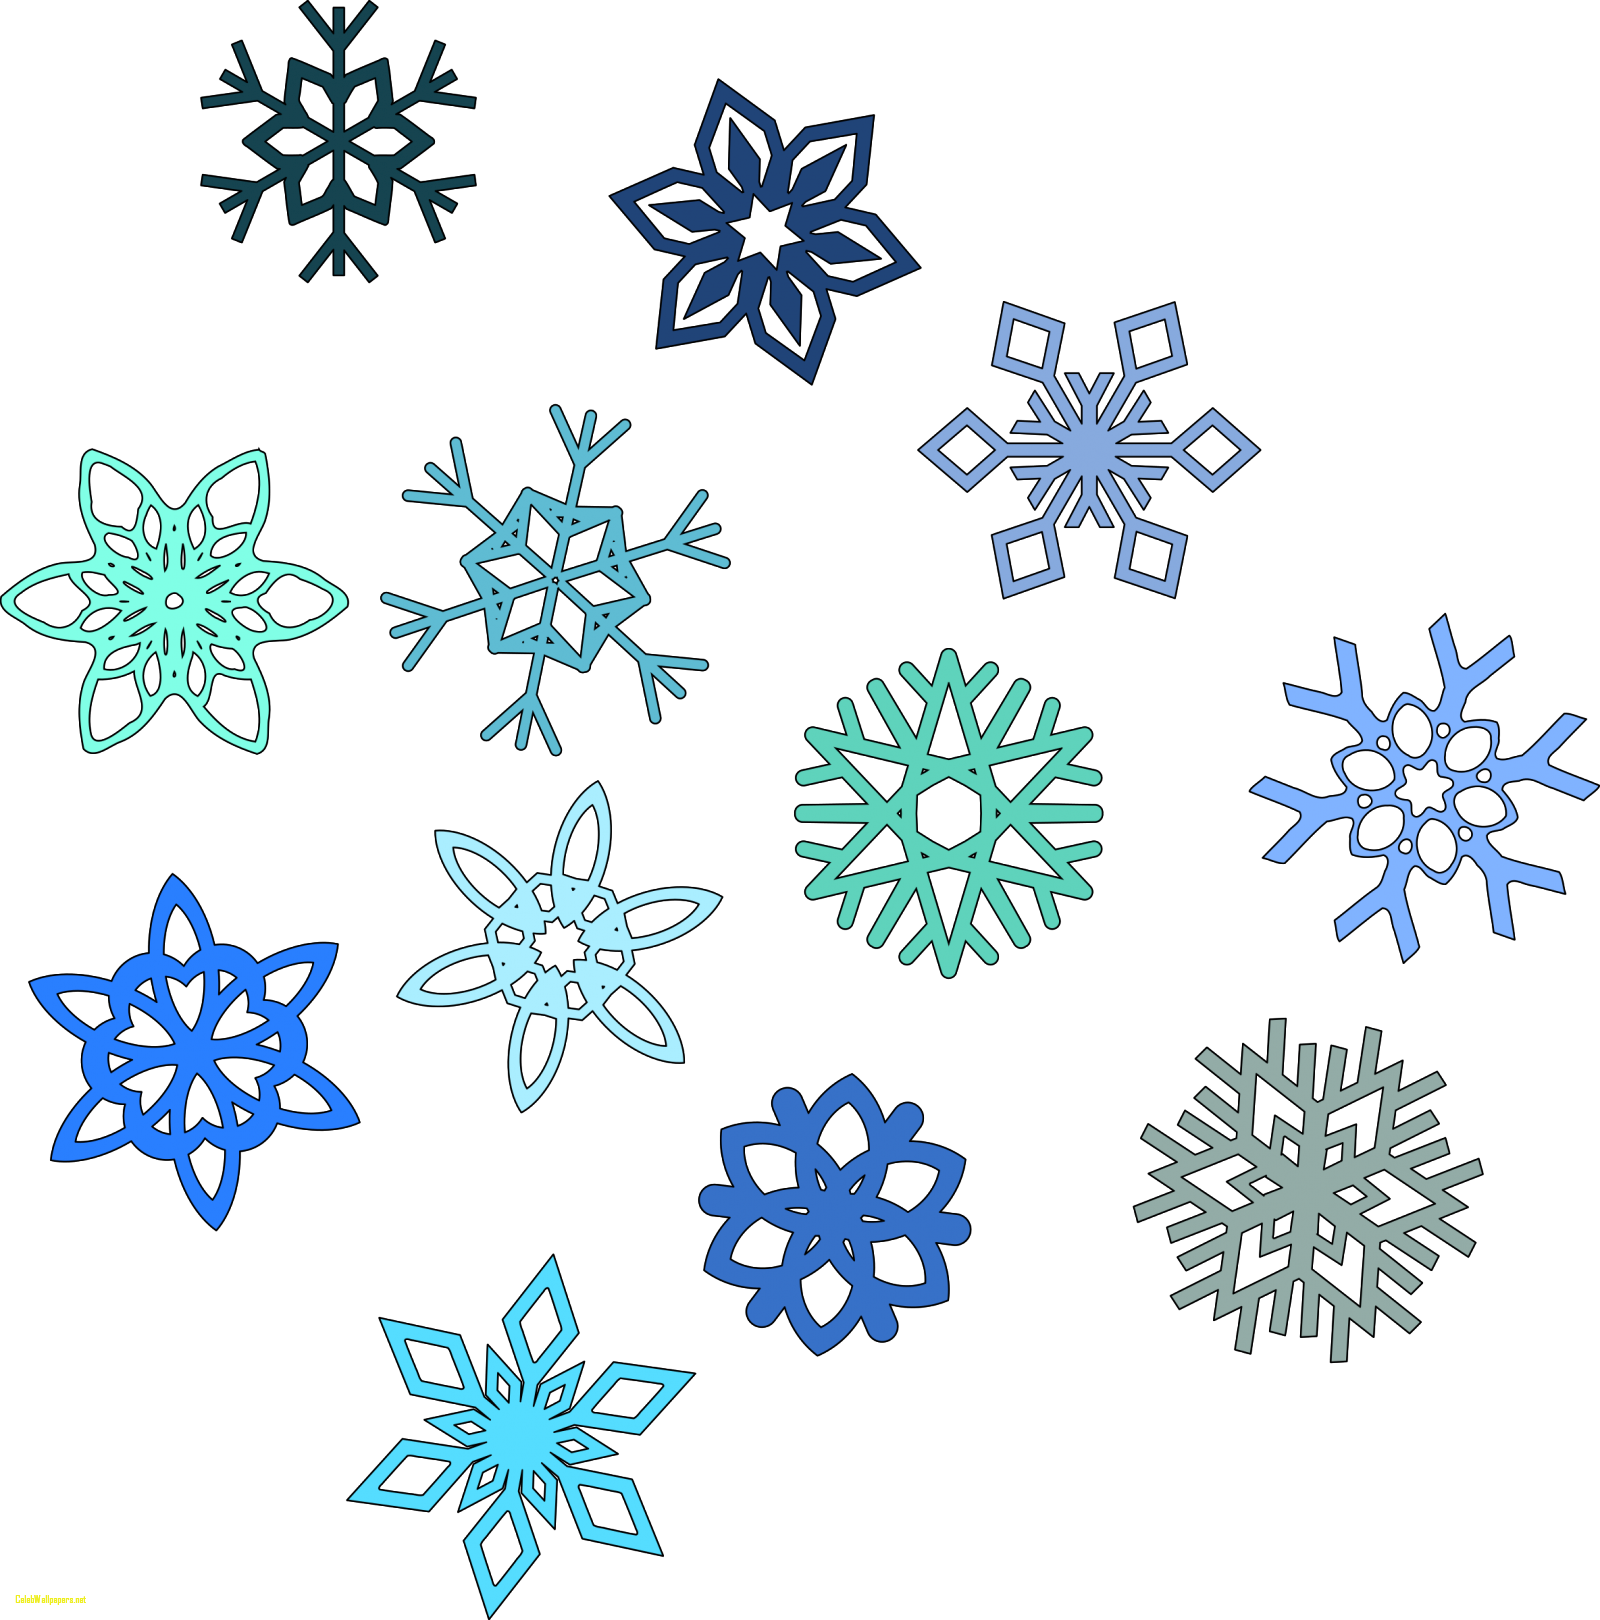 Snowflakes clipart easy. Snowflake image transparent rr